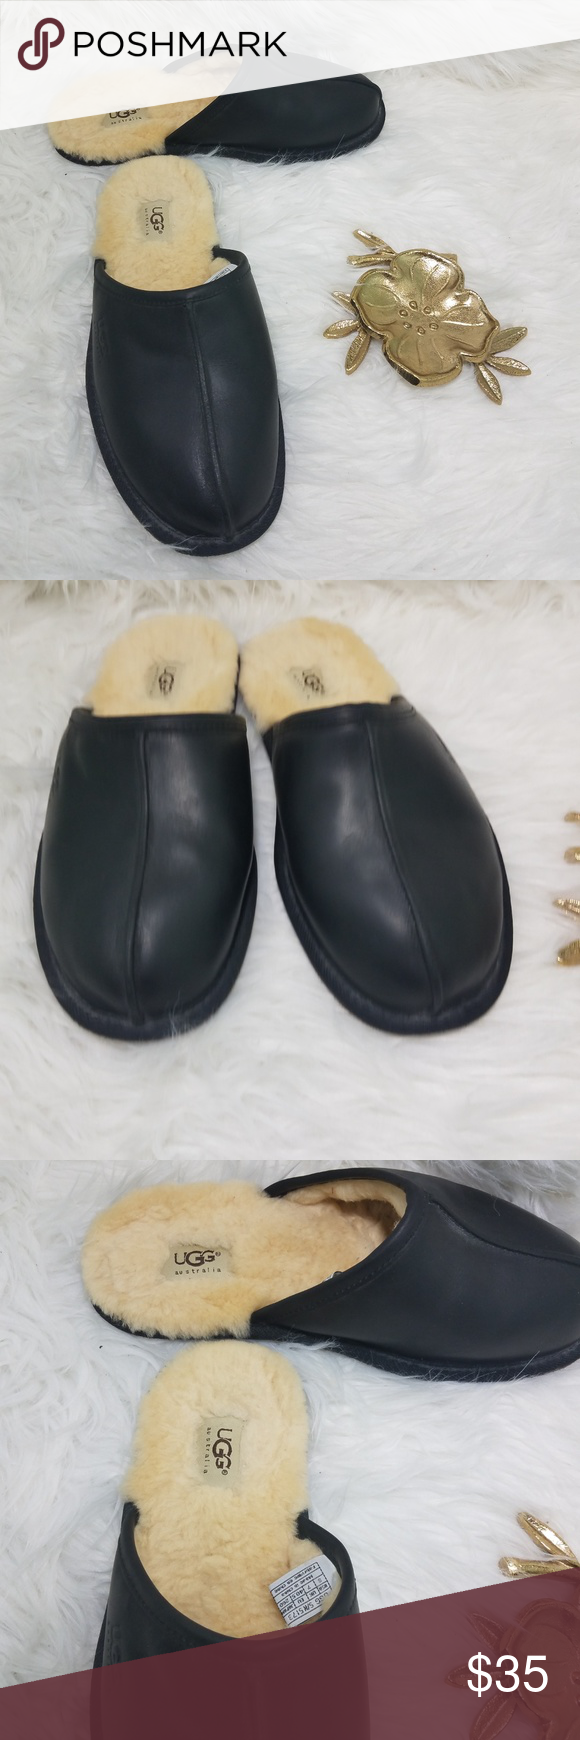 59ae08019b2 UGG Black Leather Scuff Slippers - Size 8 Gently Worn, in great ...